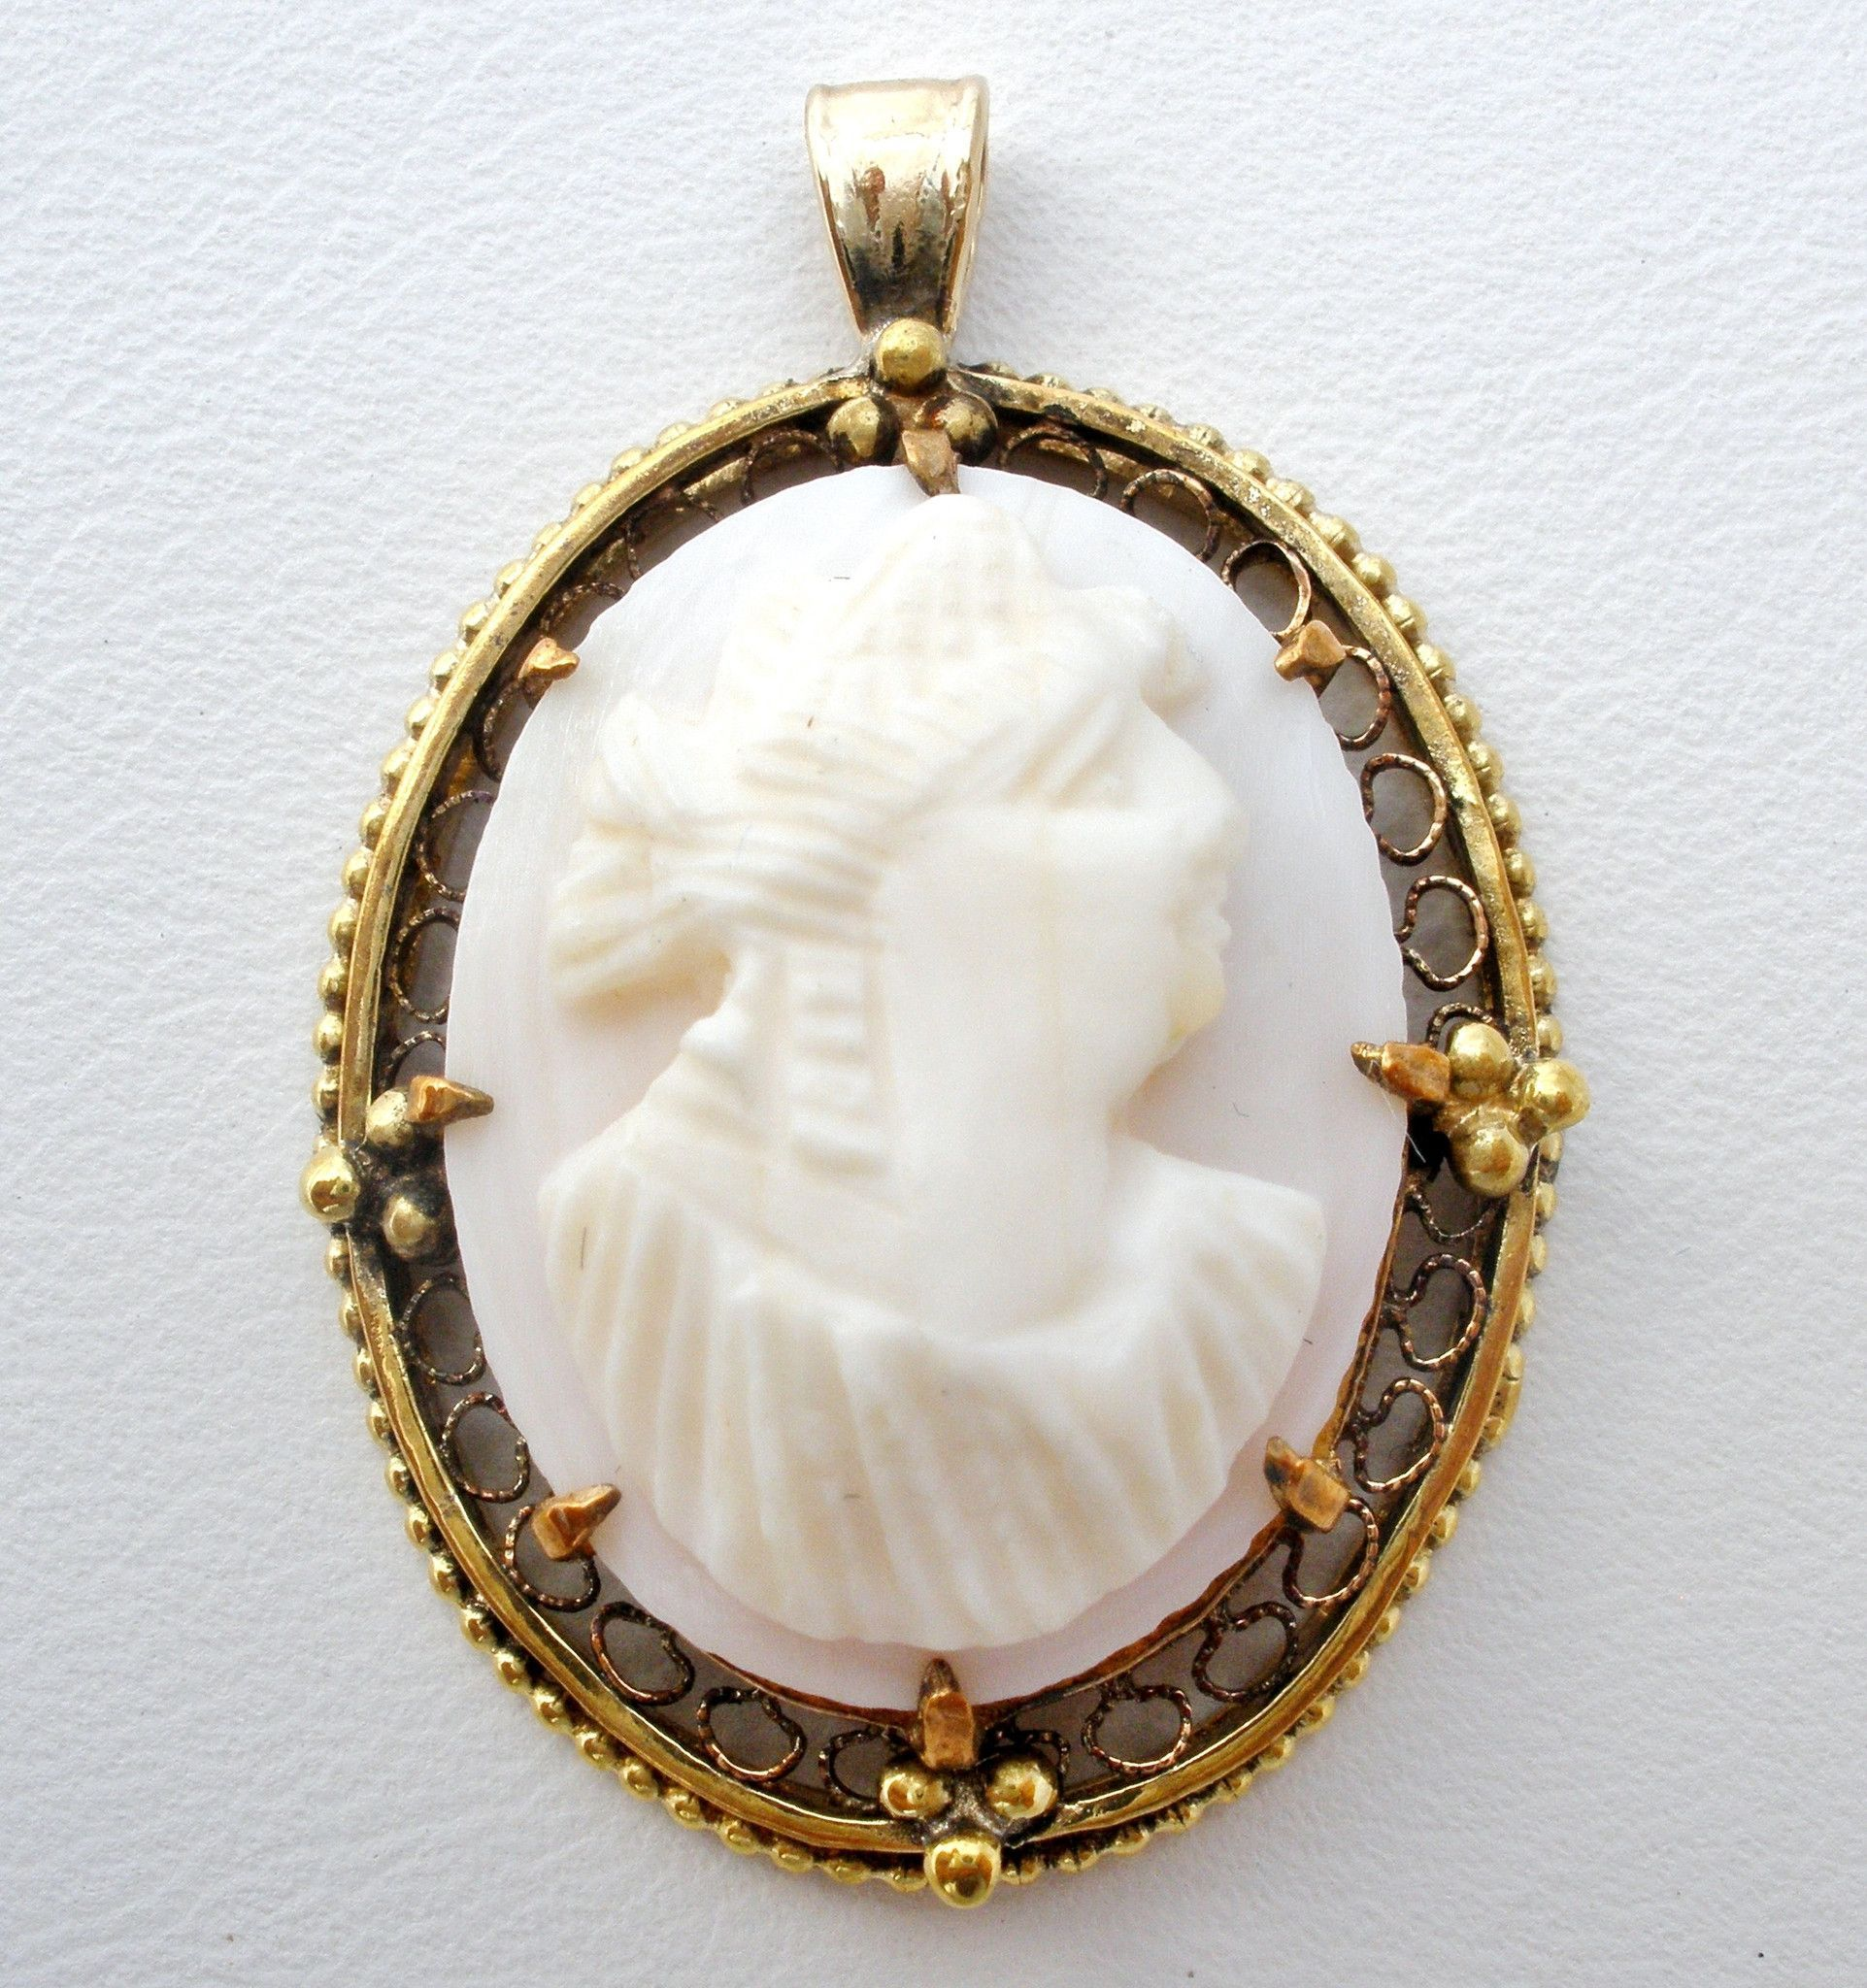 Antique 10k Gold Pink Conch Shell Cameo Pendant Wrc Cameo Pendant Antique Gold Jewelry Cameo Jewelry